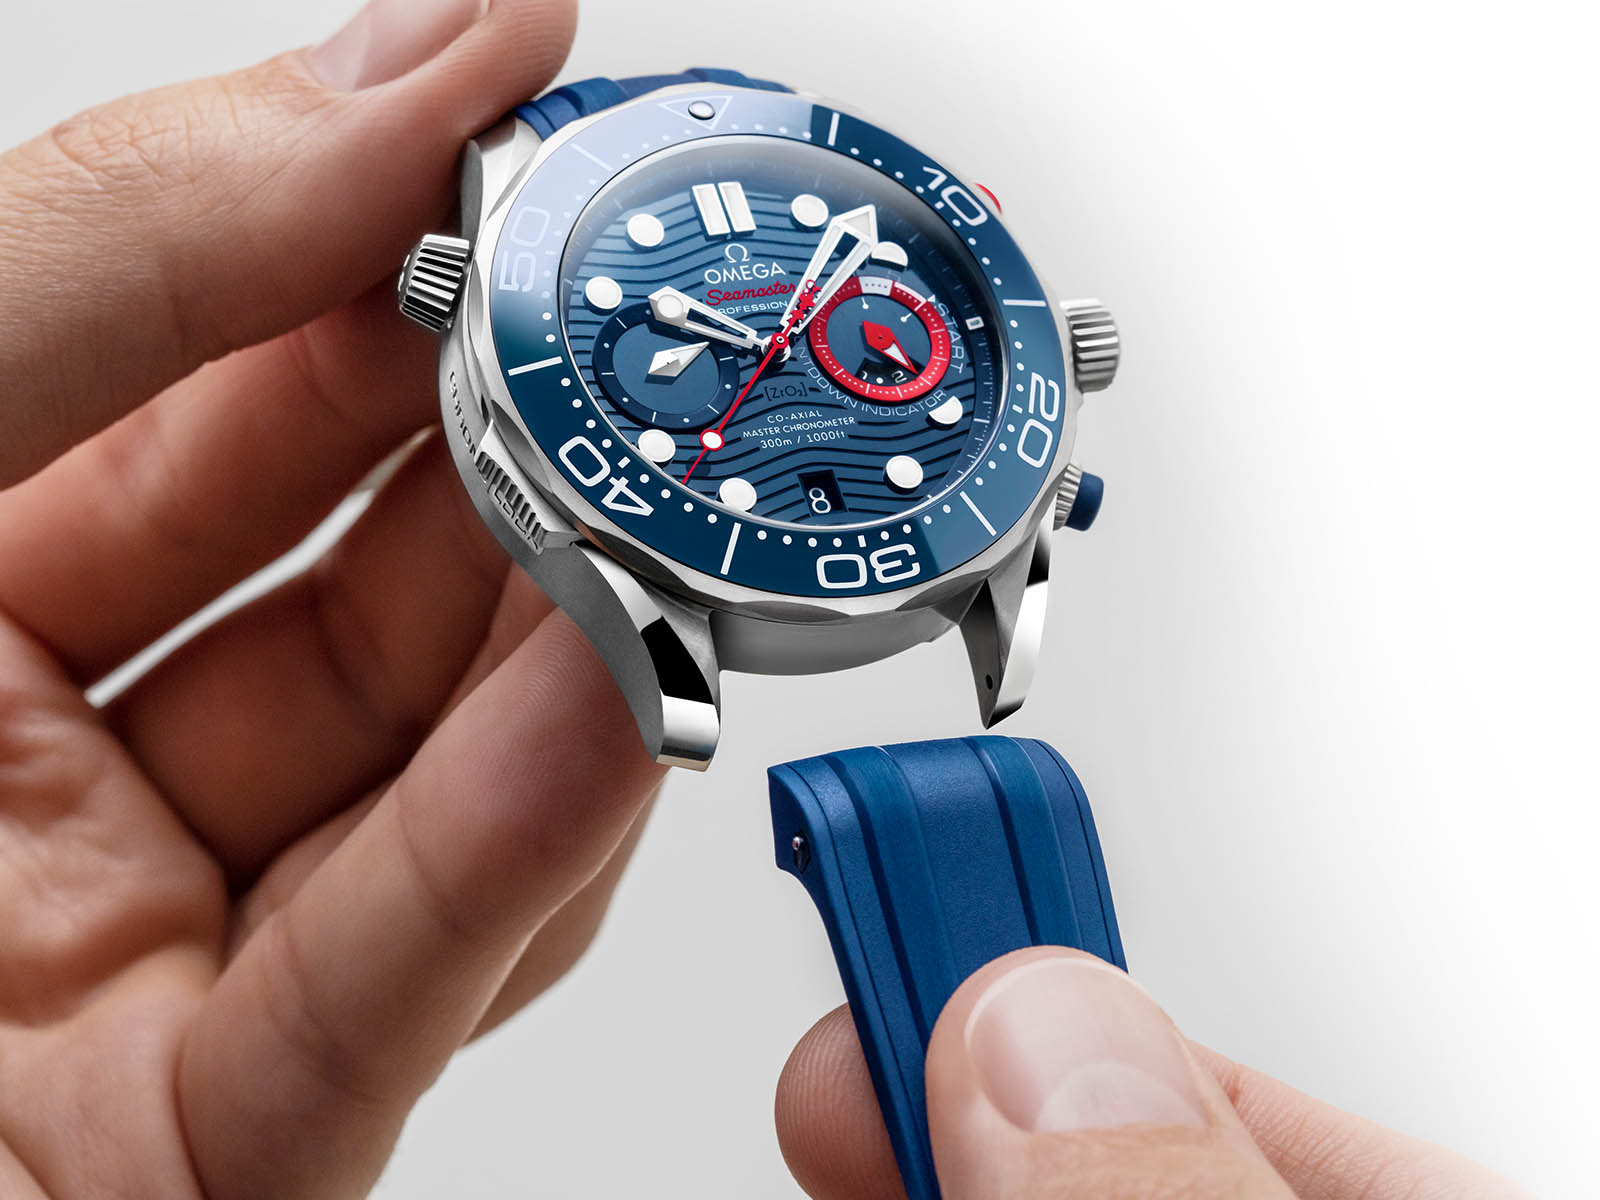 210-30-44-51-03-002-omega-seamaster-diver-300m-america-s-cup-chronograph-10.jpg